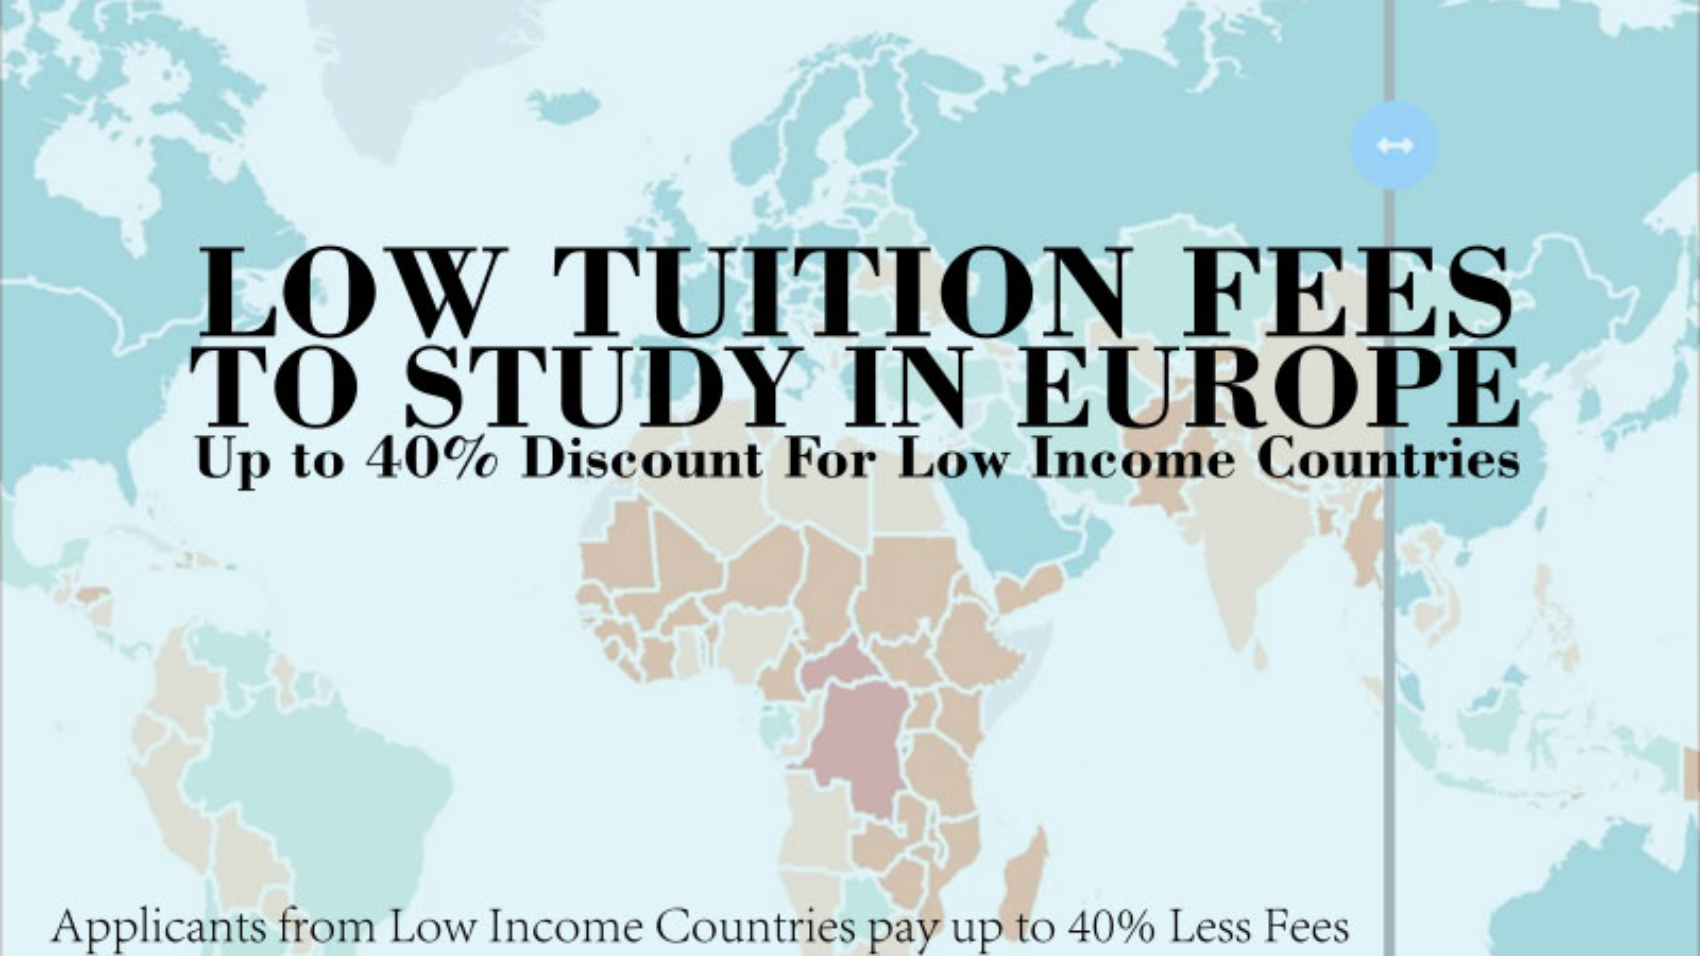 Low Tuition Fees for Study in Europe For Low Income Countries